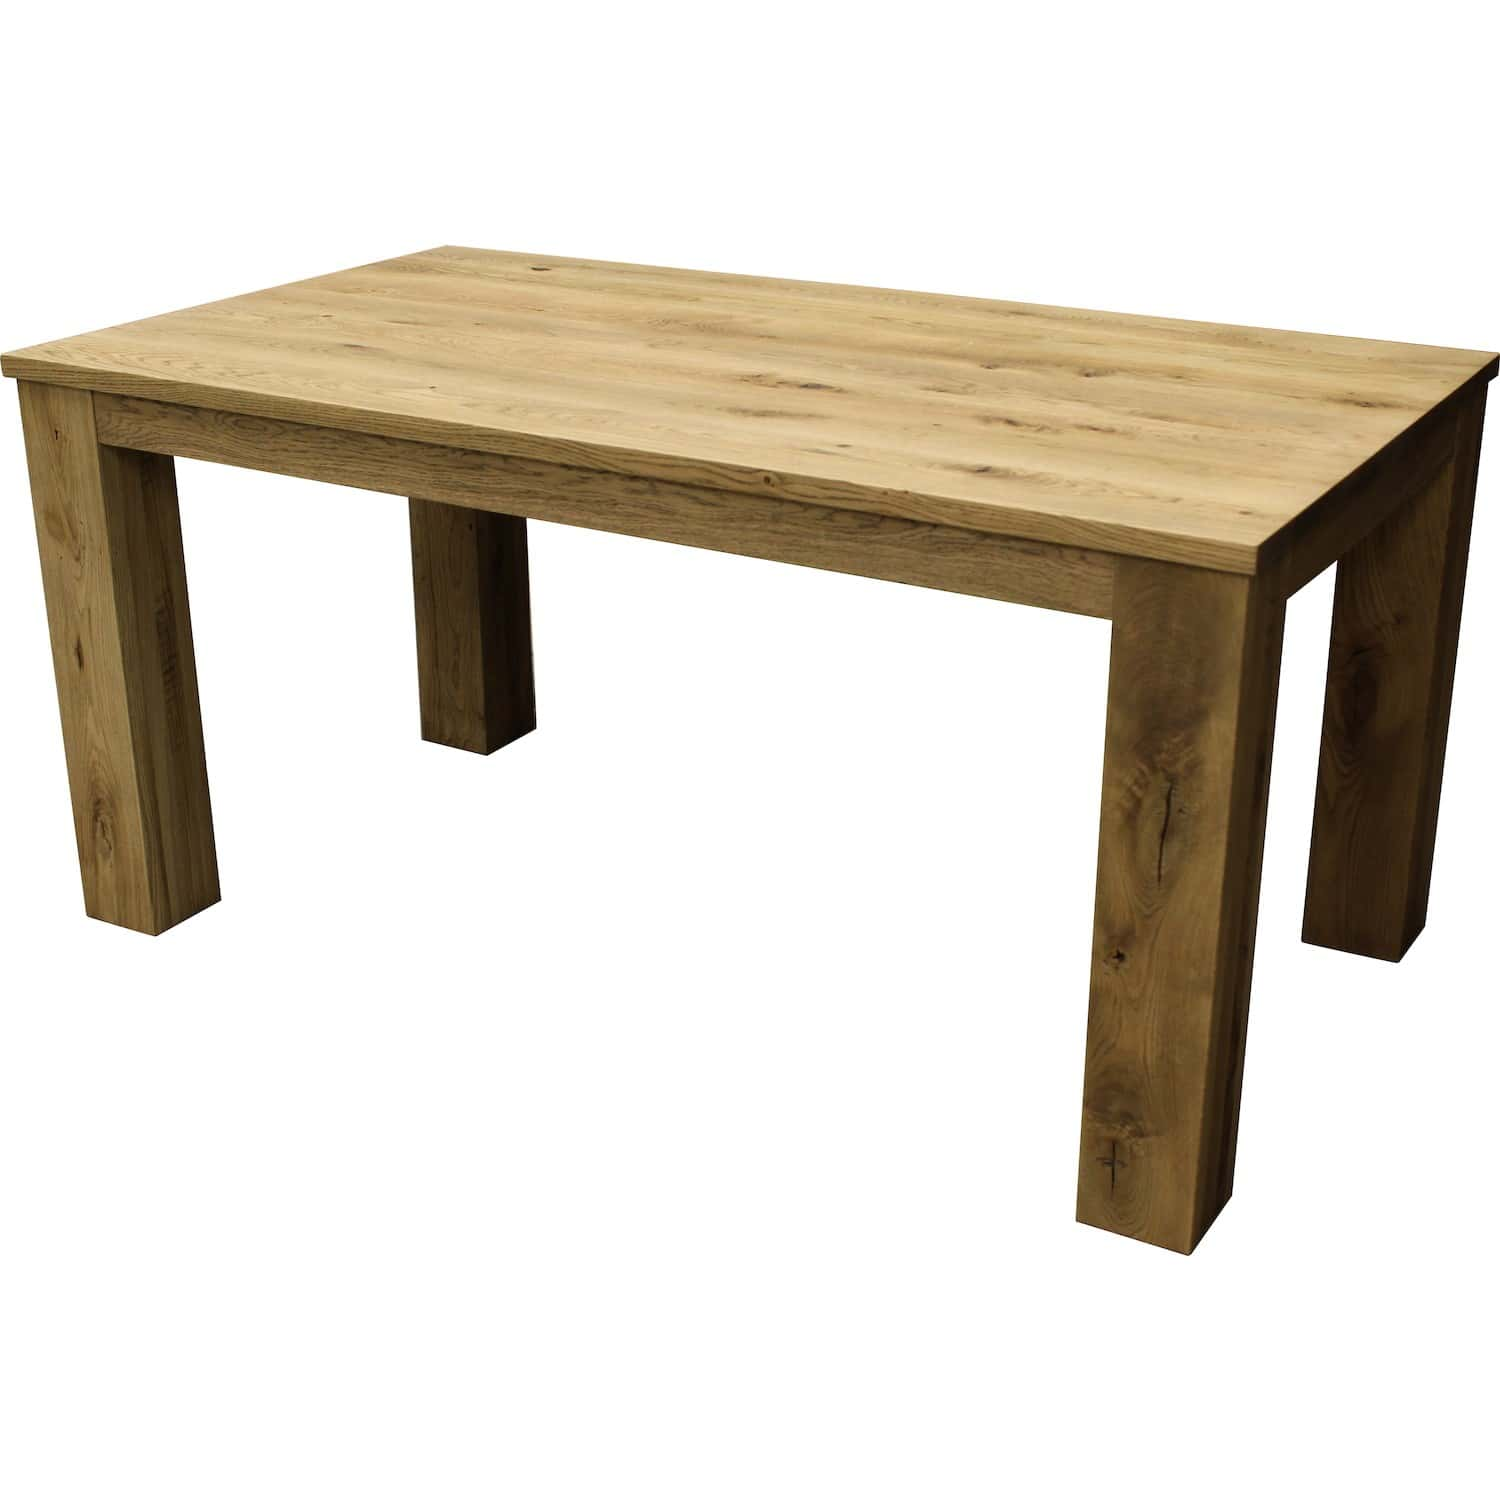 Table rectangulaire en ch ne massif avec allonge int gr e jbf - Table rectangulaire avec allonge ...